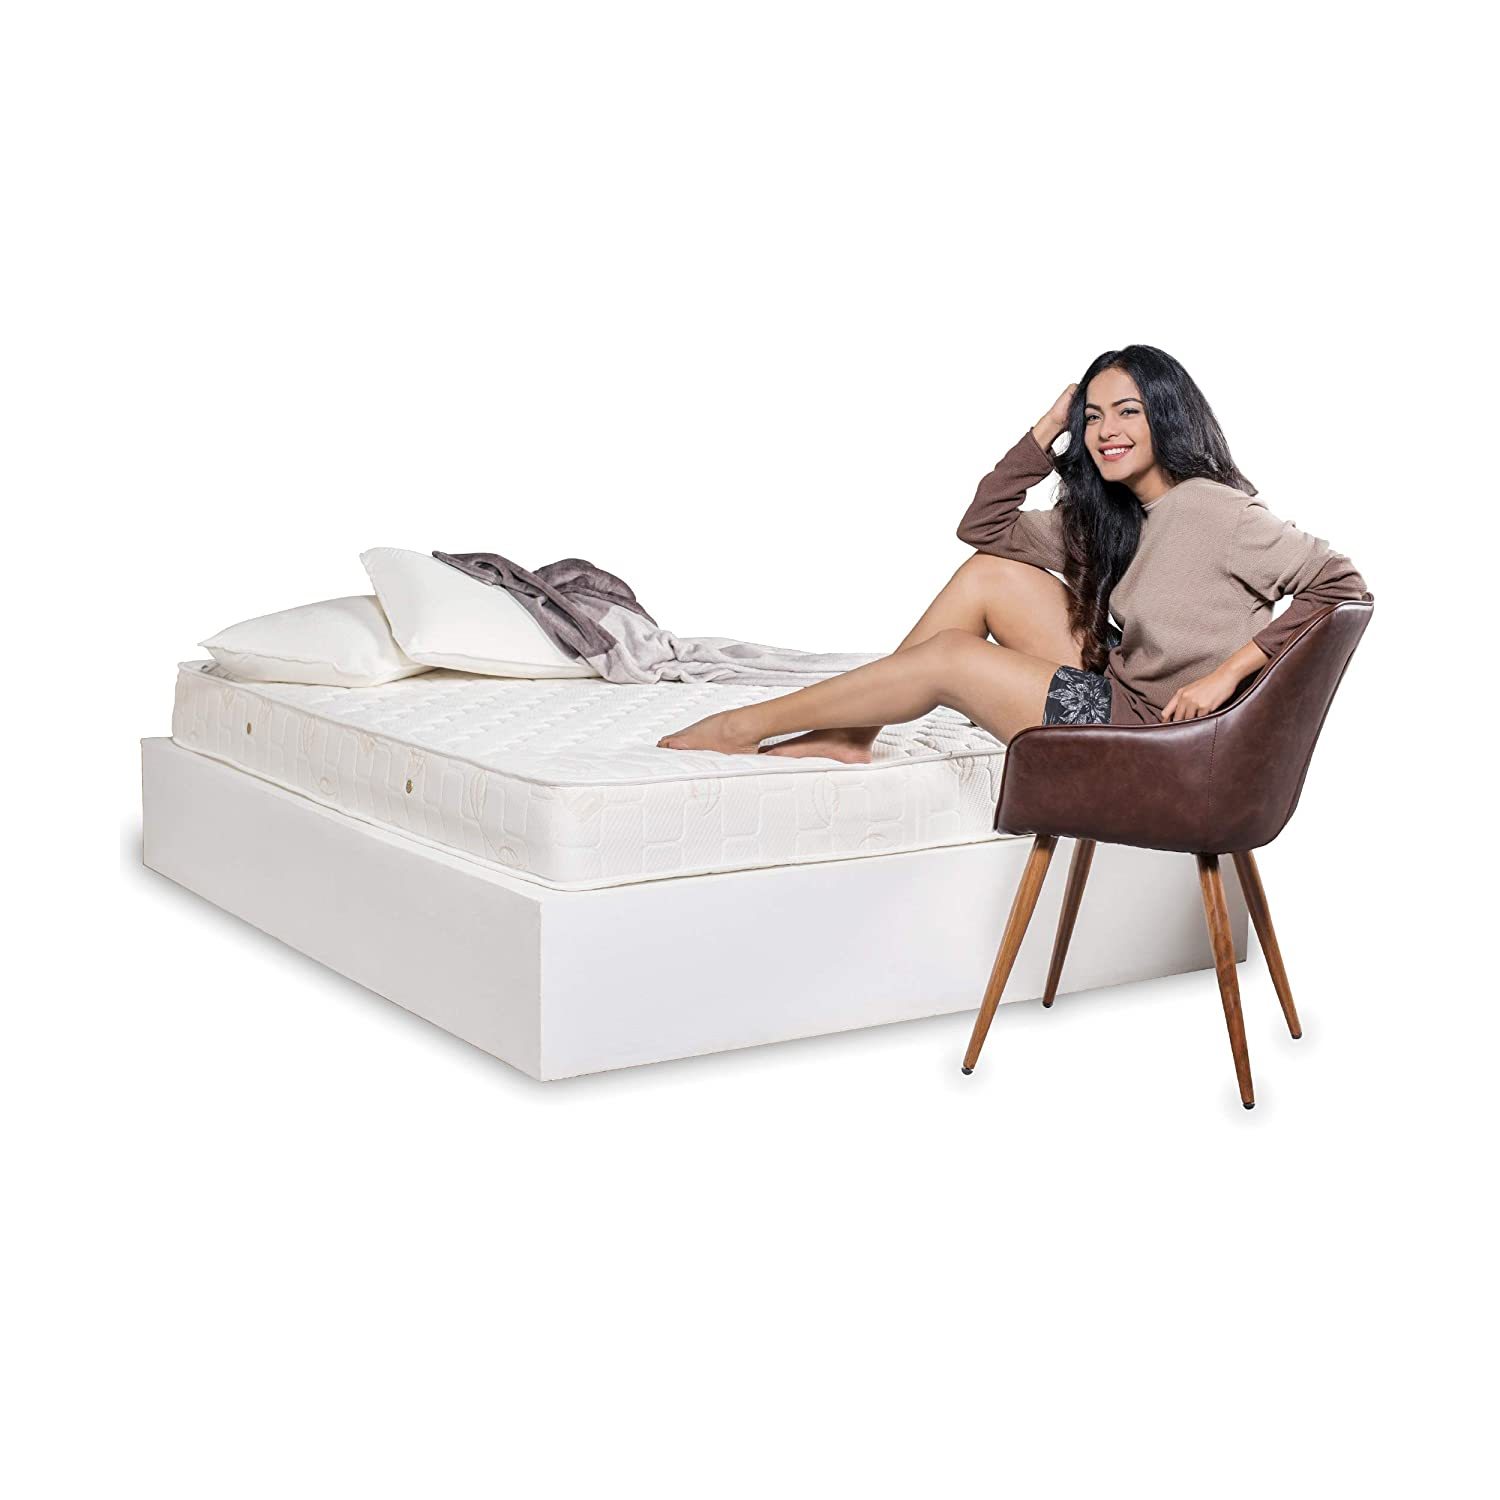 Explore the overall thickness of a coil in the innerspring mattress